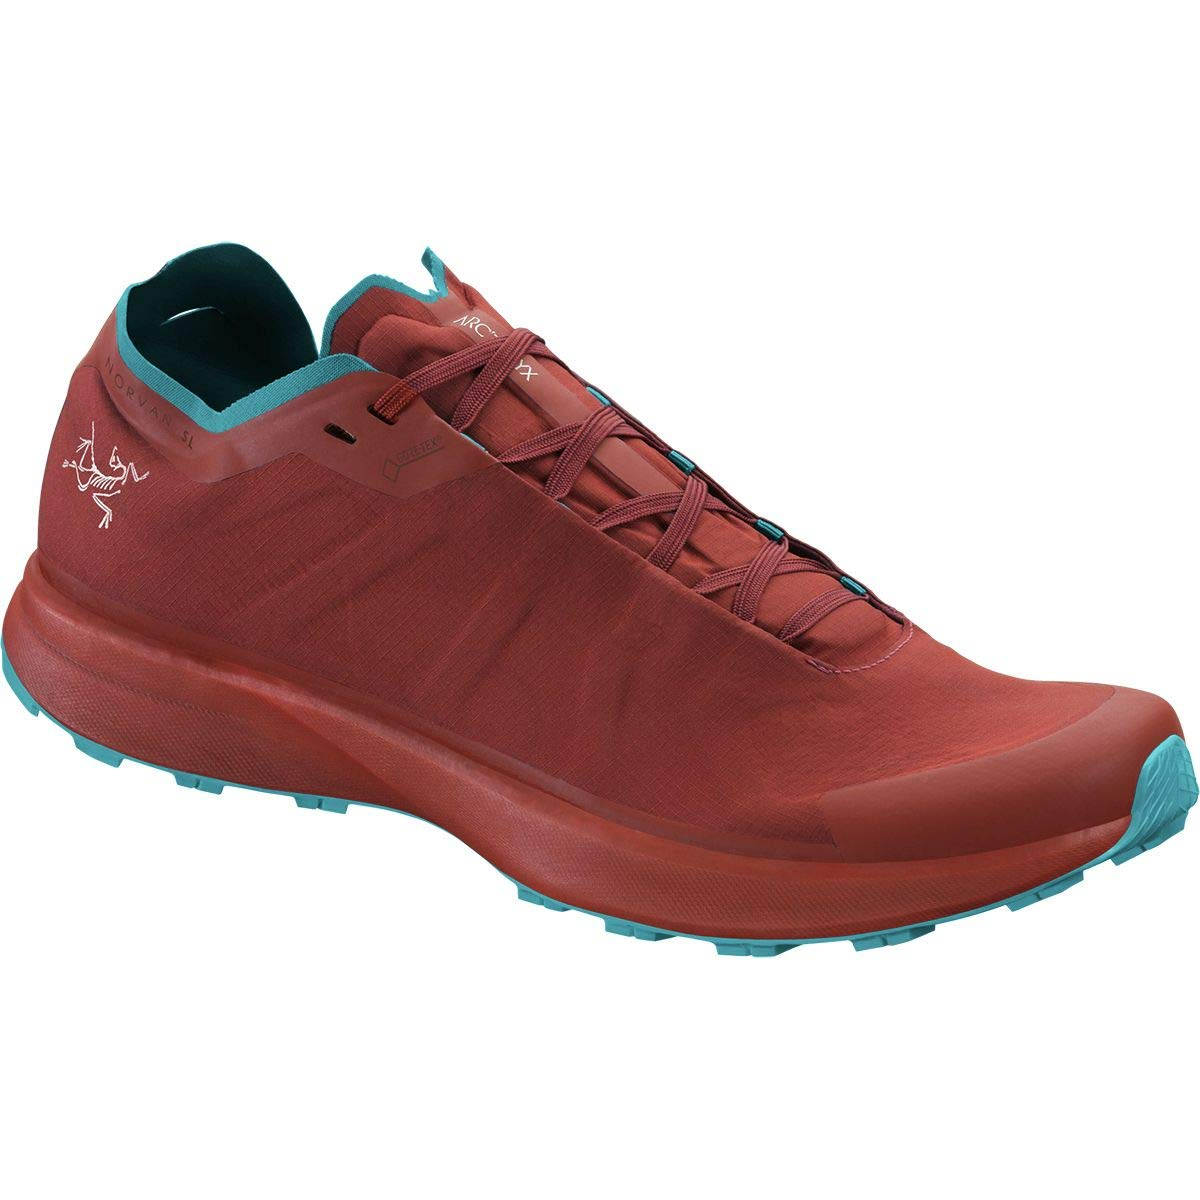 【おすすめ】 [アークテリクス] メンズ メンズ ランニング Norvan B07P2WCWSX SL GTX Running Shoe [並行輸入品] Running B07P2WCWSX US-9.0/UK-8.5, Lemme:41104970 --- doctor.officeporto.com